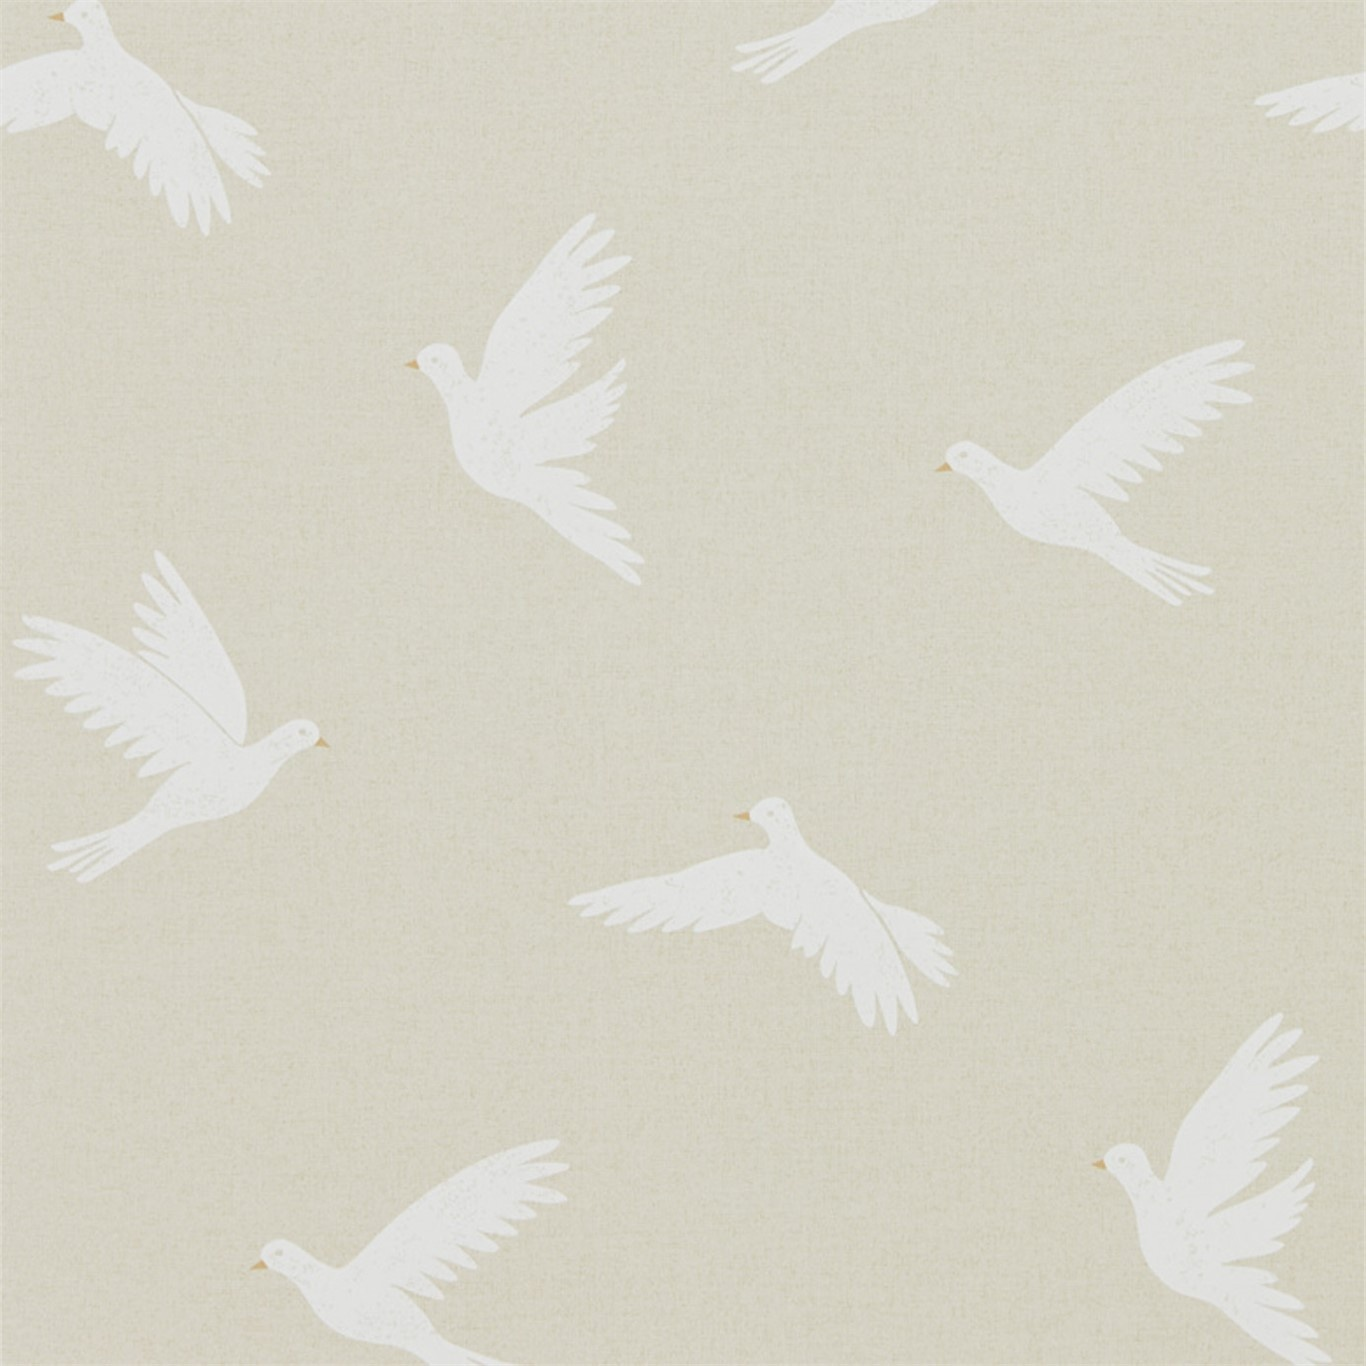 Image of Sanderson Home Paper Doves Linen Wallpaper 216378